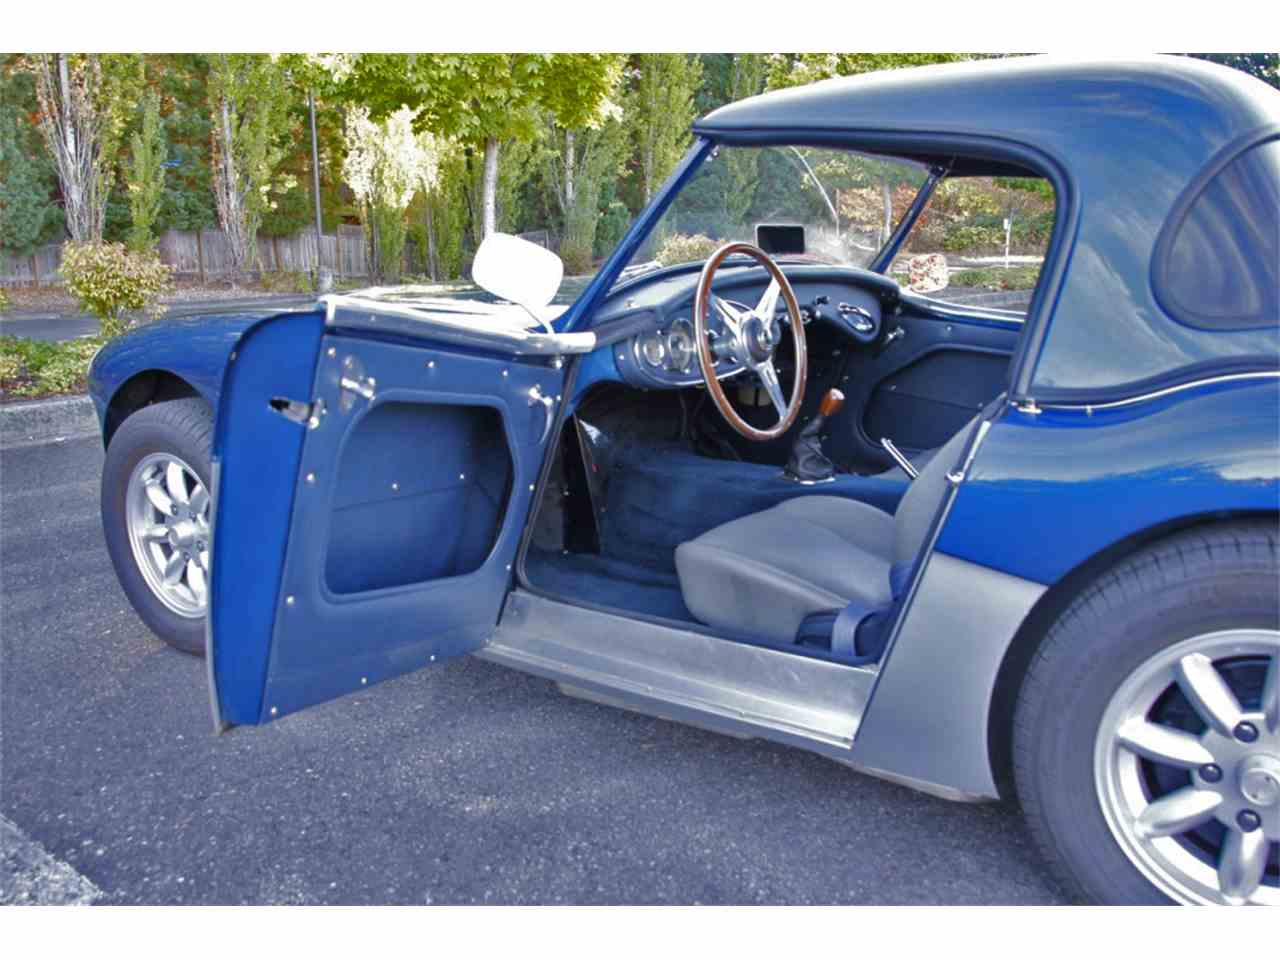 Large Picture of Classic '59 Austin-Healey 3000 Mark I BN7 located in Portland Oregon Offered by a Private Seller - LU6O